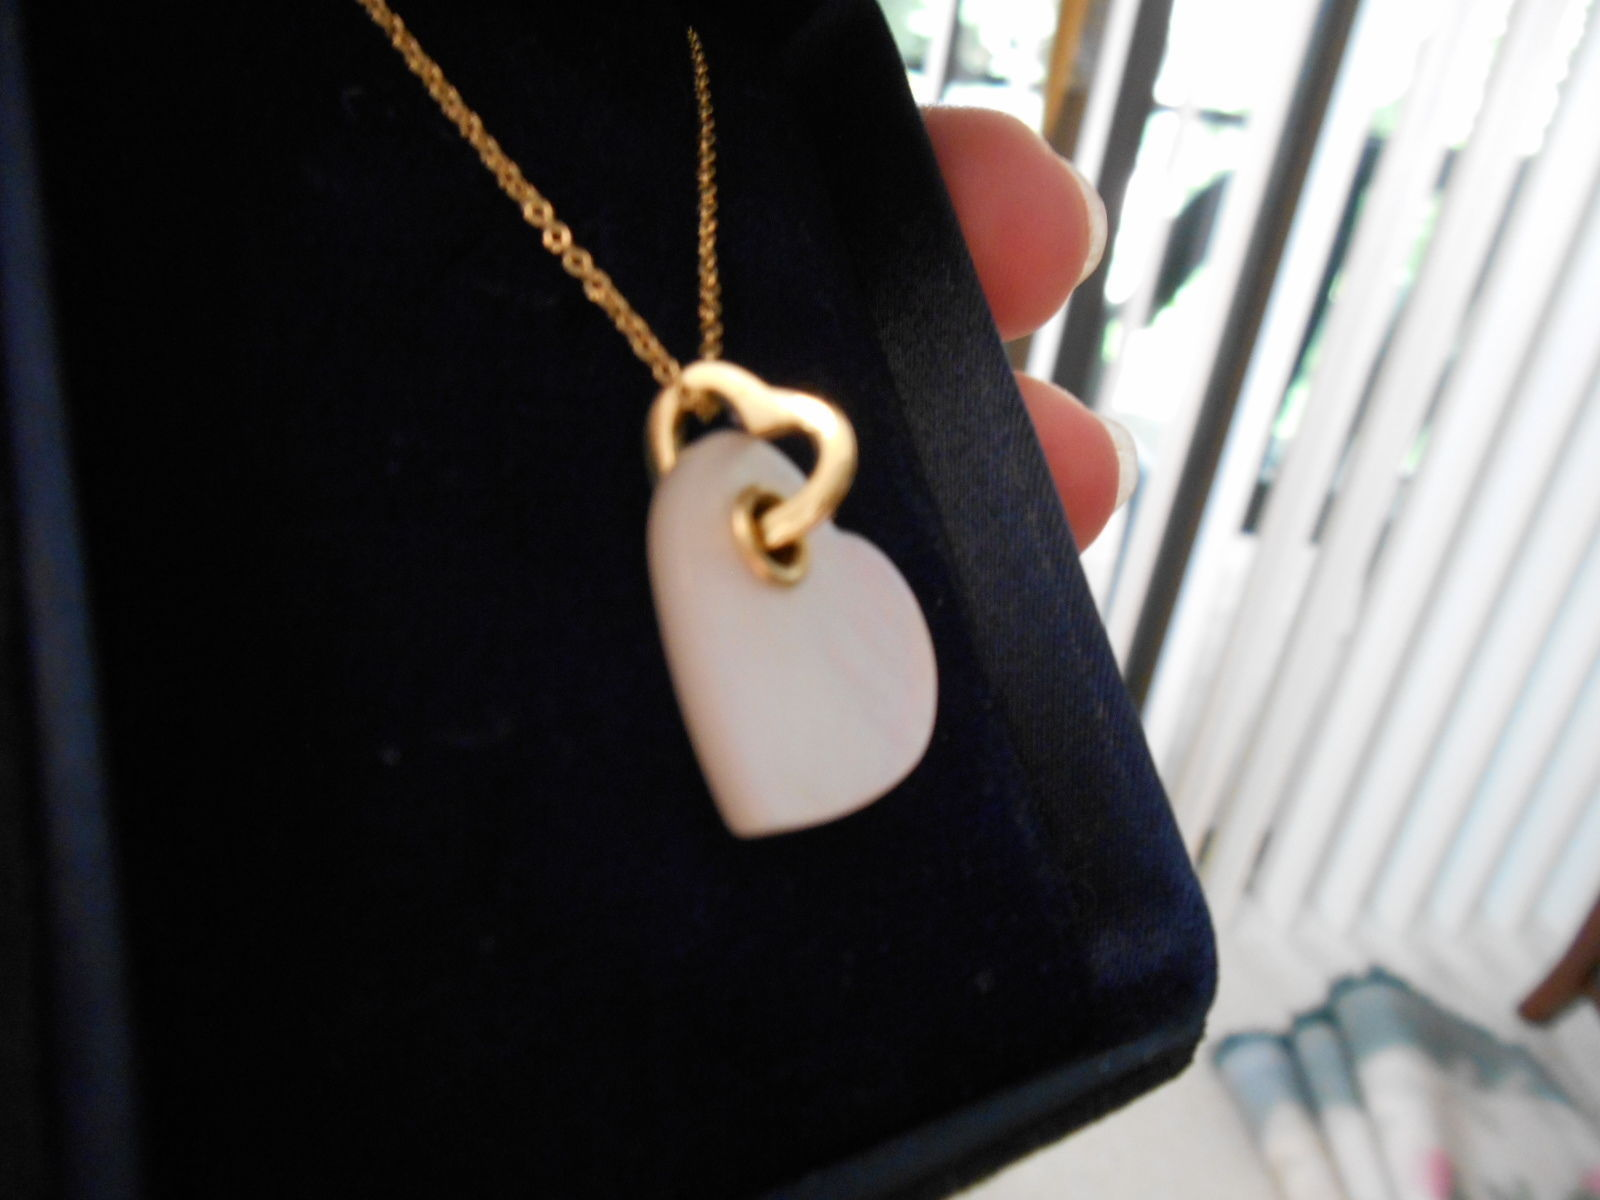 d8b992fdb S l1600. S l1600. Previous. Tiffany & Co 18K Heart Mother of Pearl Double  Heart Yellow Gold Necklace RARE